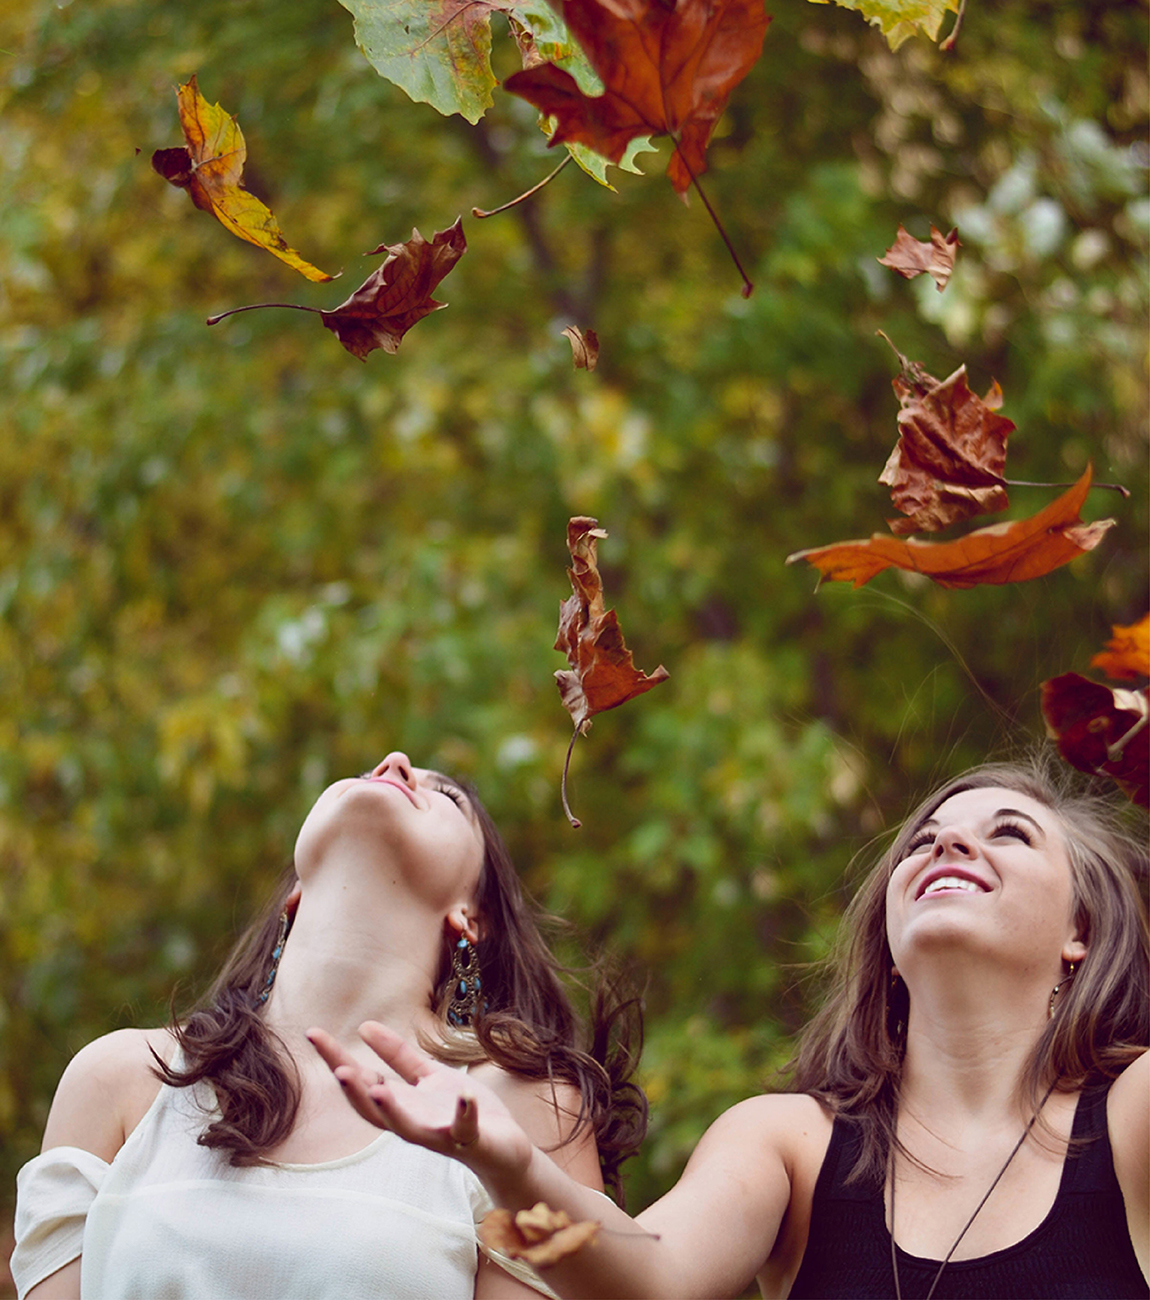 Girls throwing leaves into the air